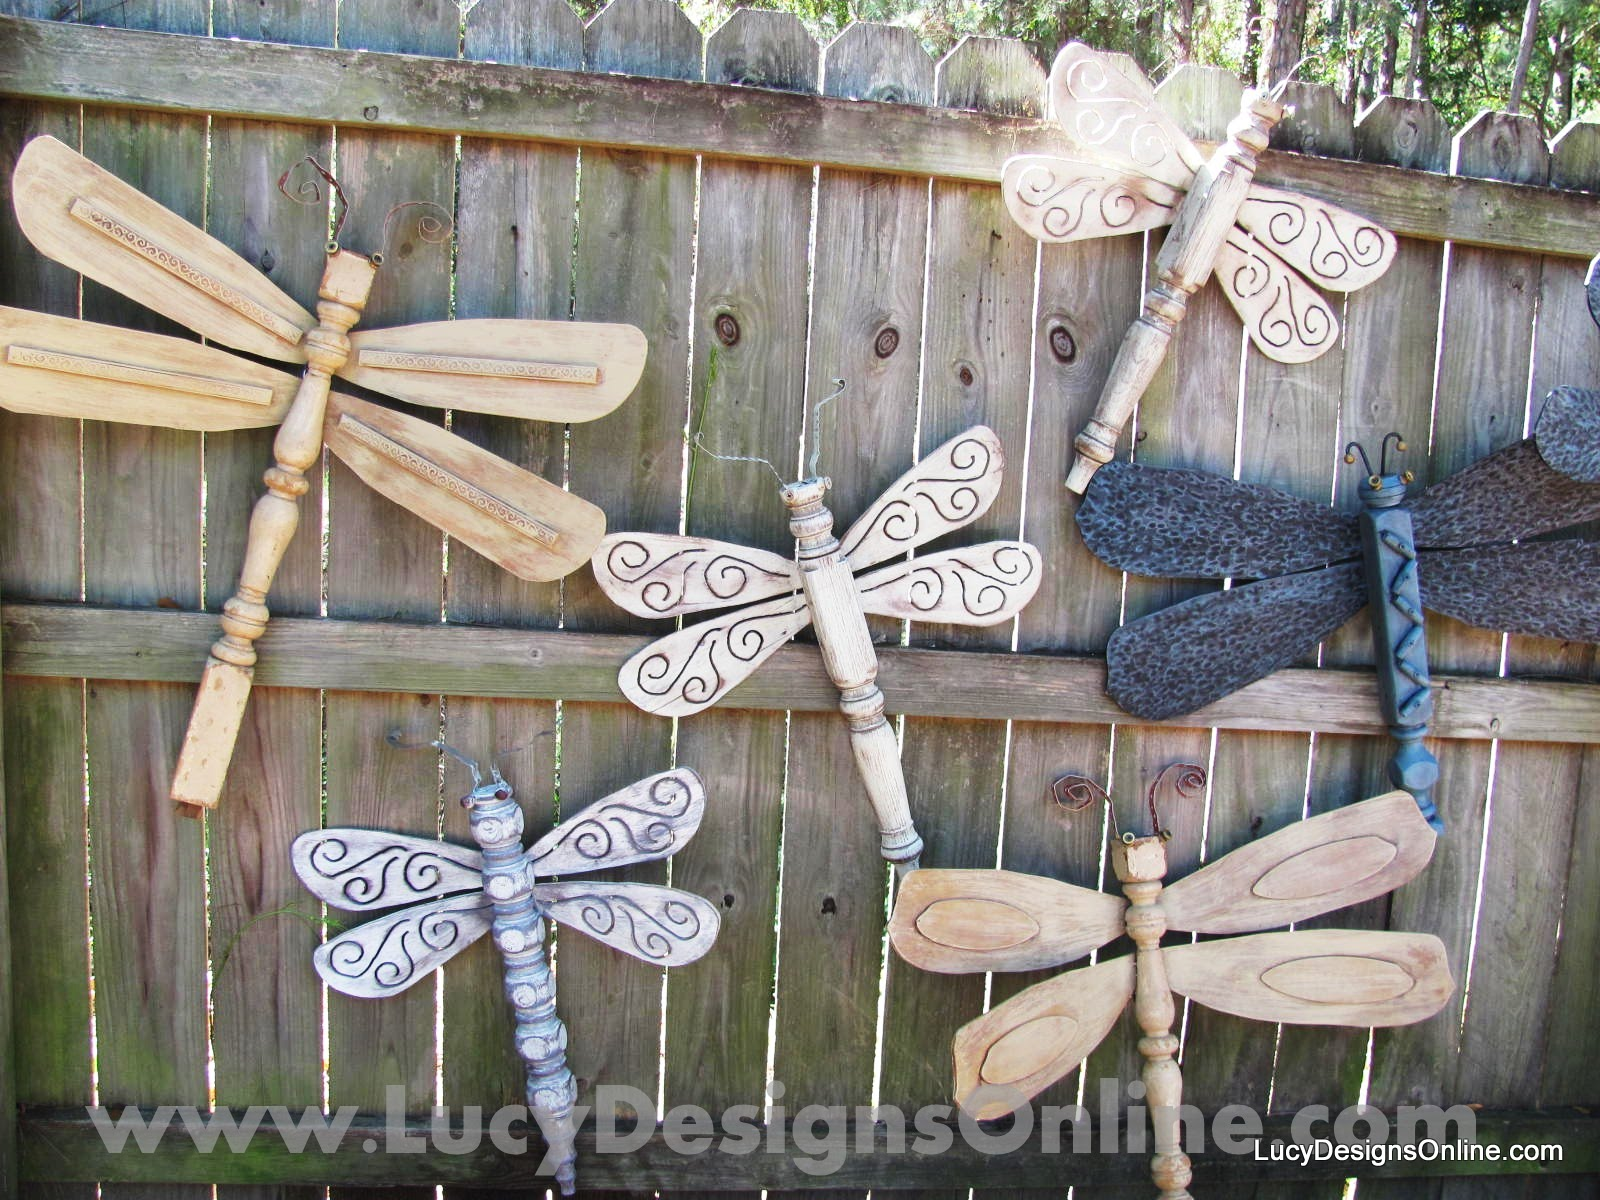 Dragonflies Made out of Furniture Elements